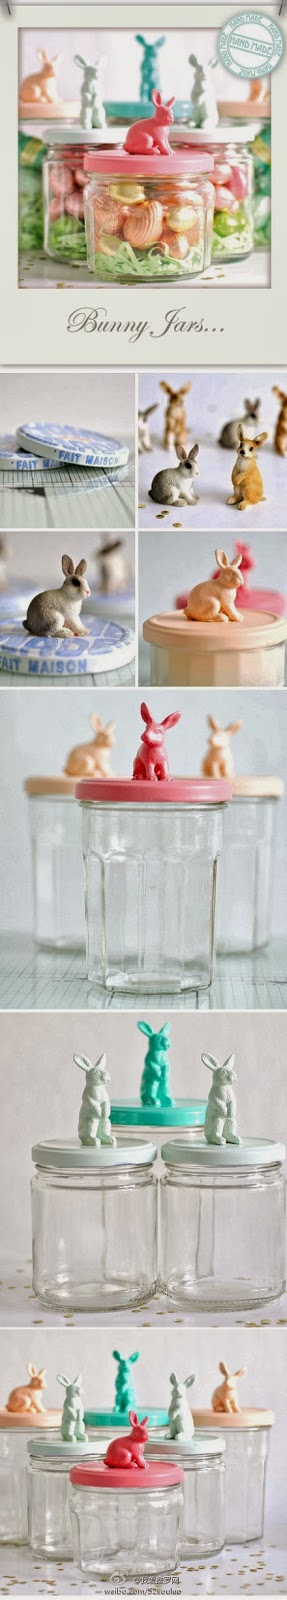 Bunny jars,, Easy to made